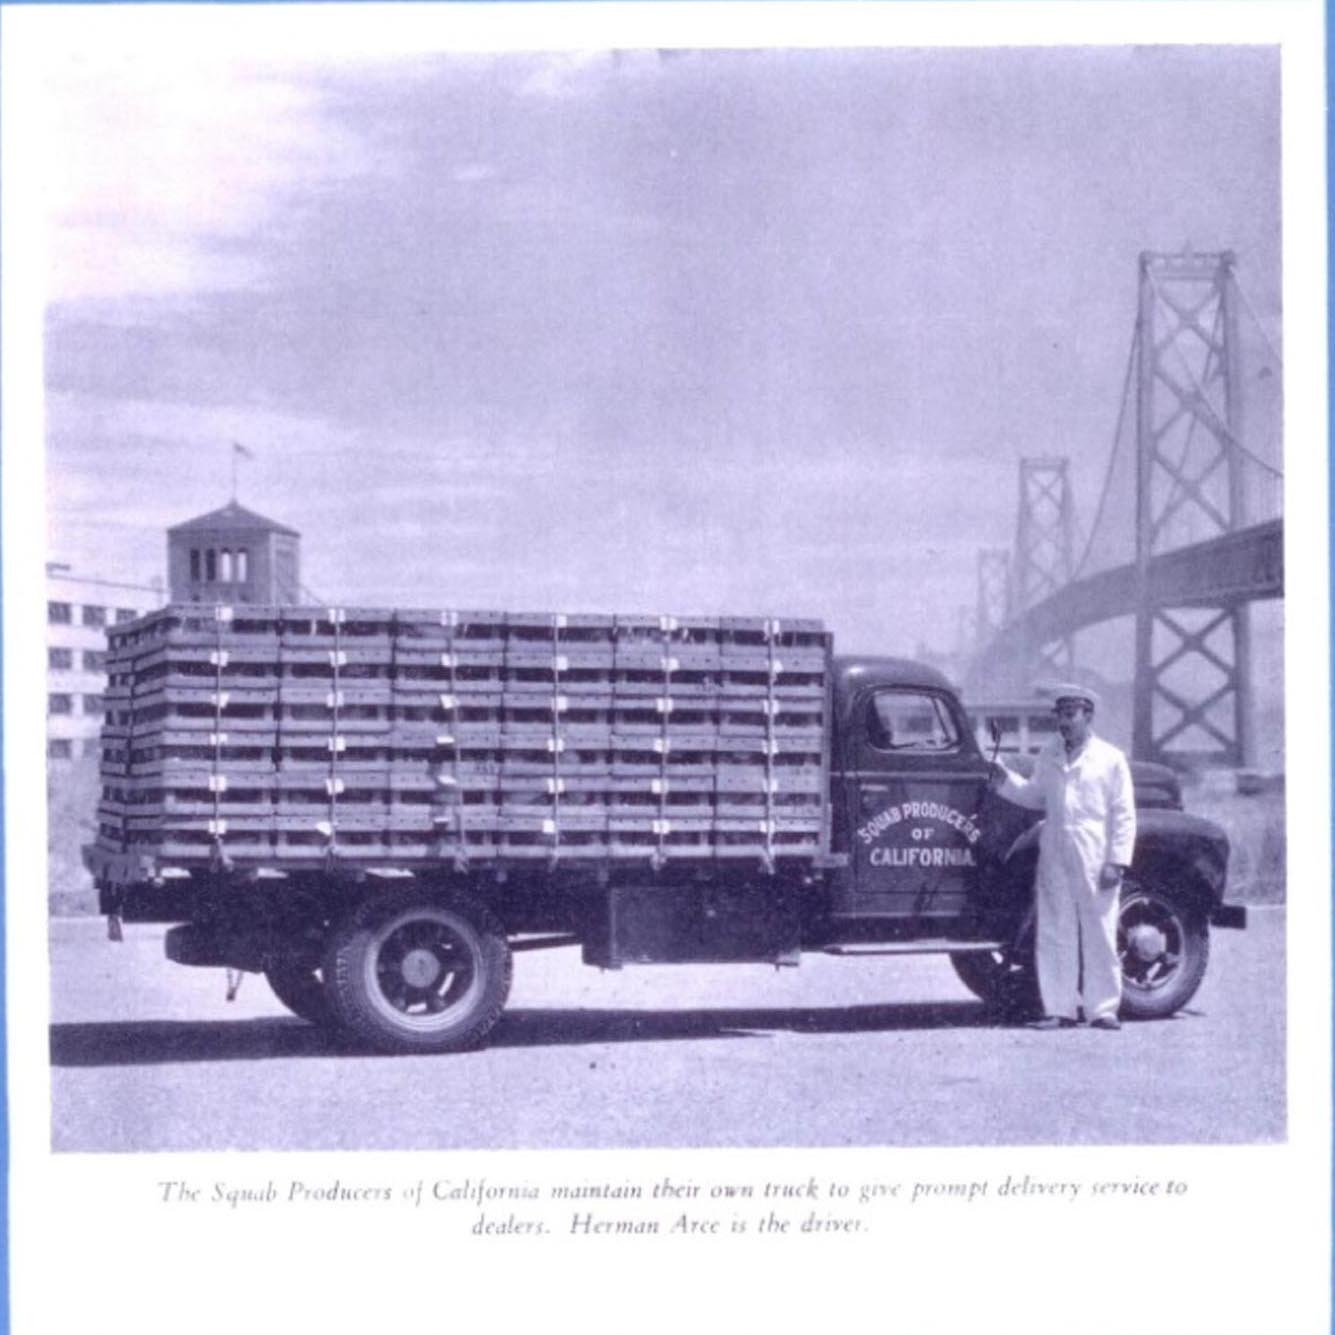 August 1946. Co-op member Herman Arce pictured with a SPOC delivery truck underneath the Golden Gate bridge.